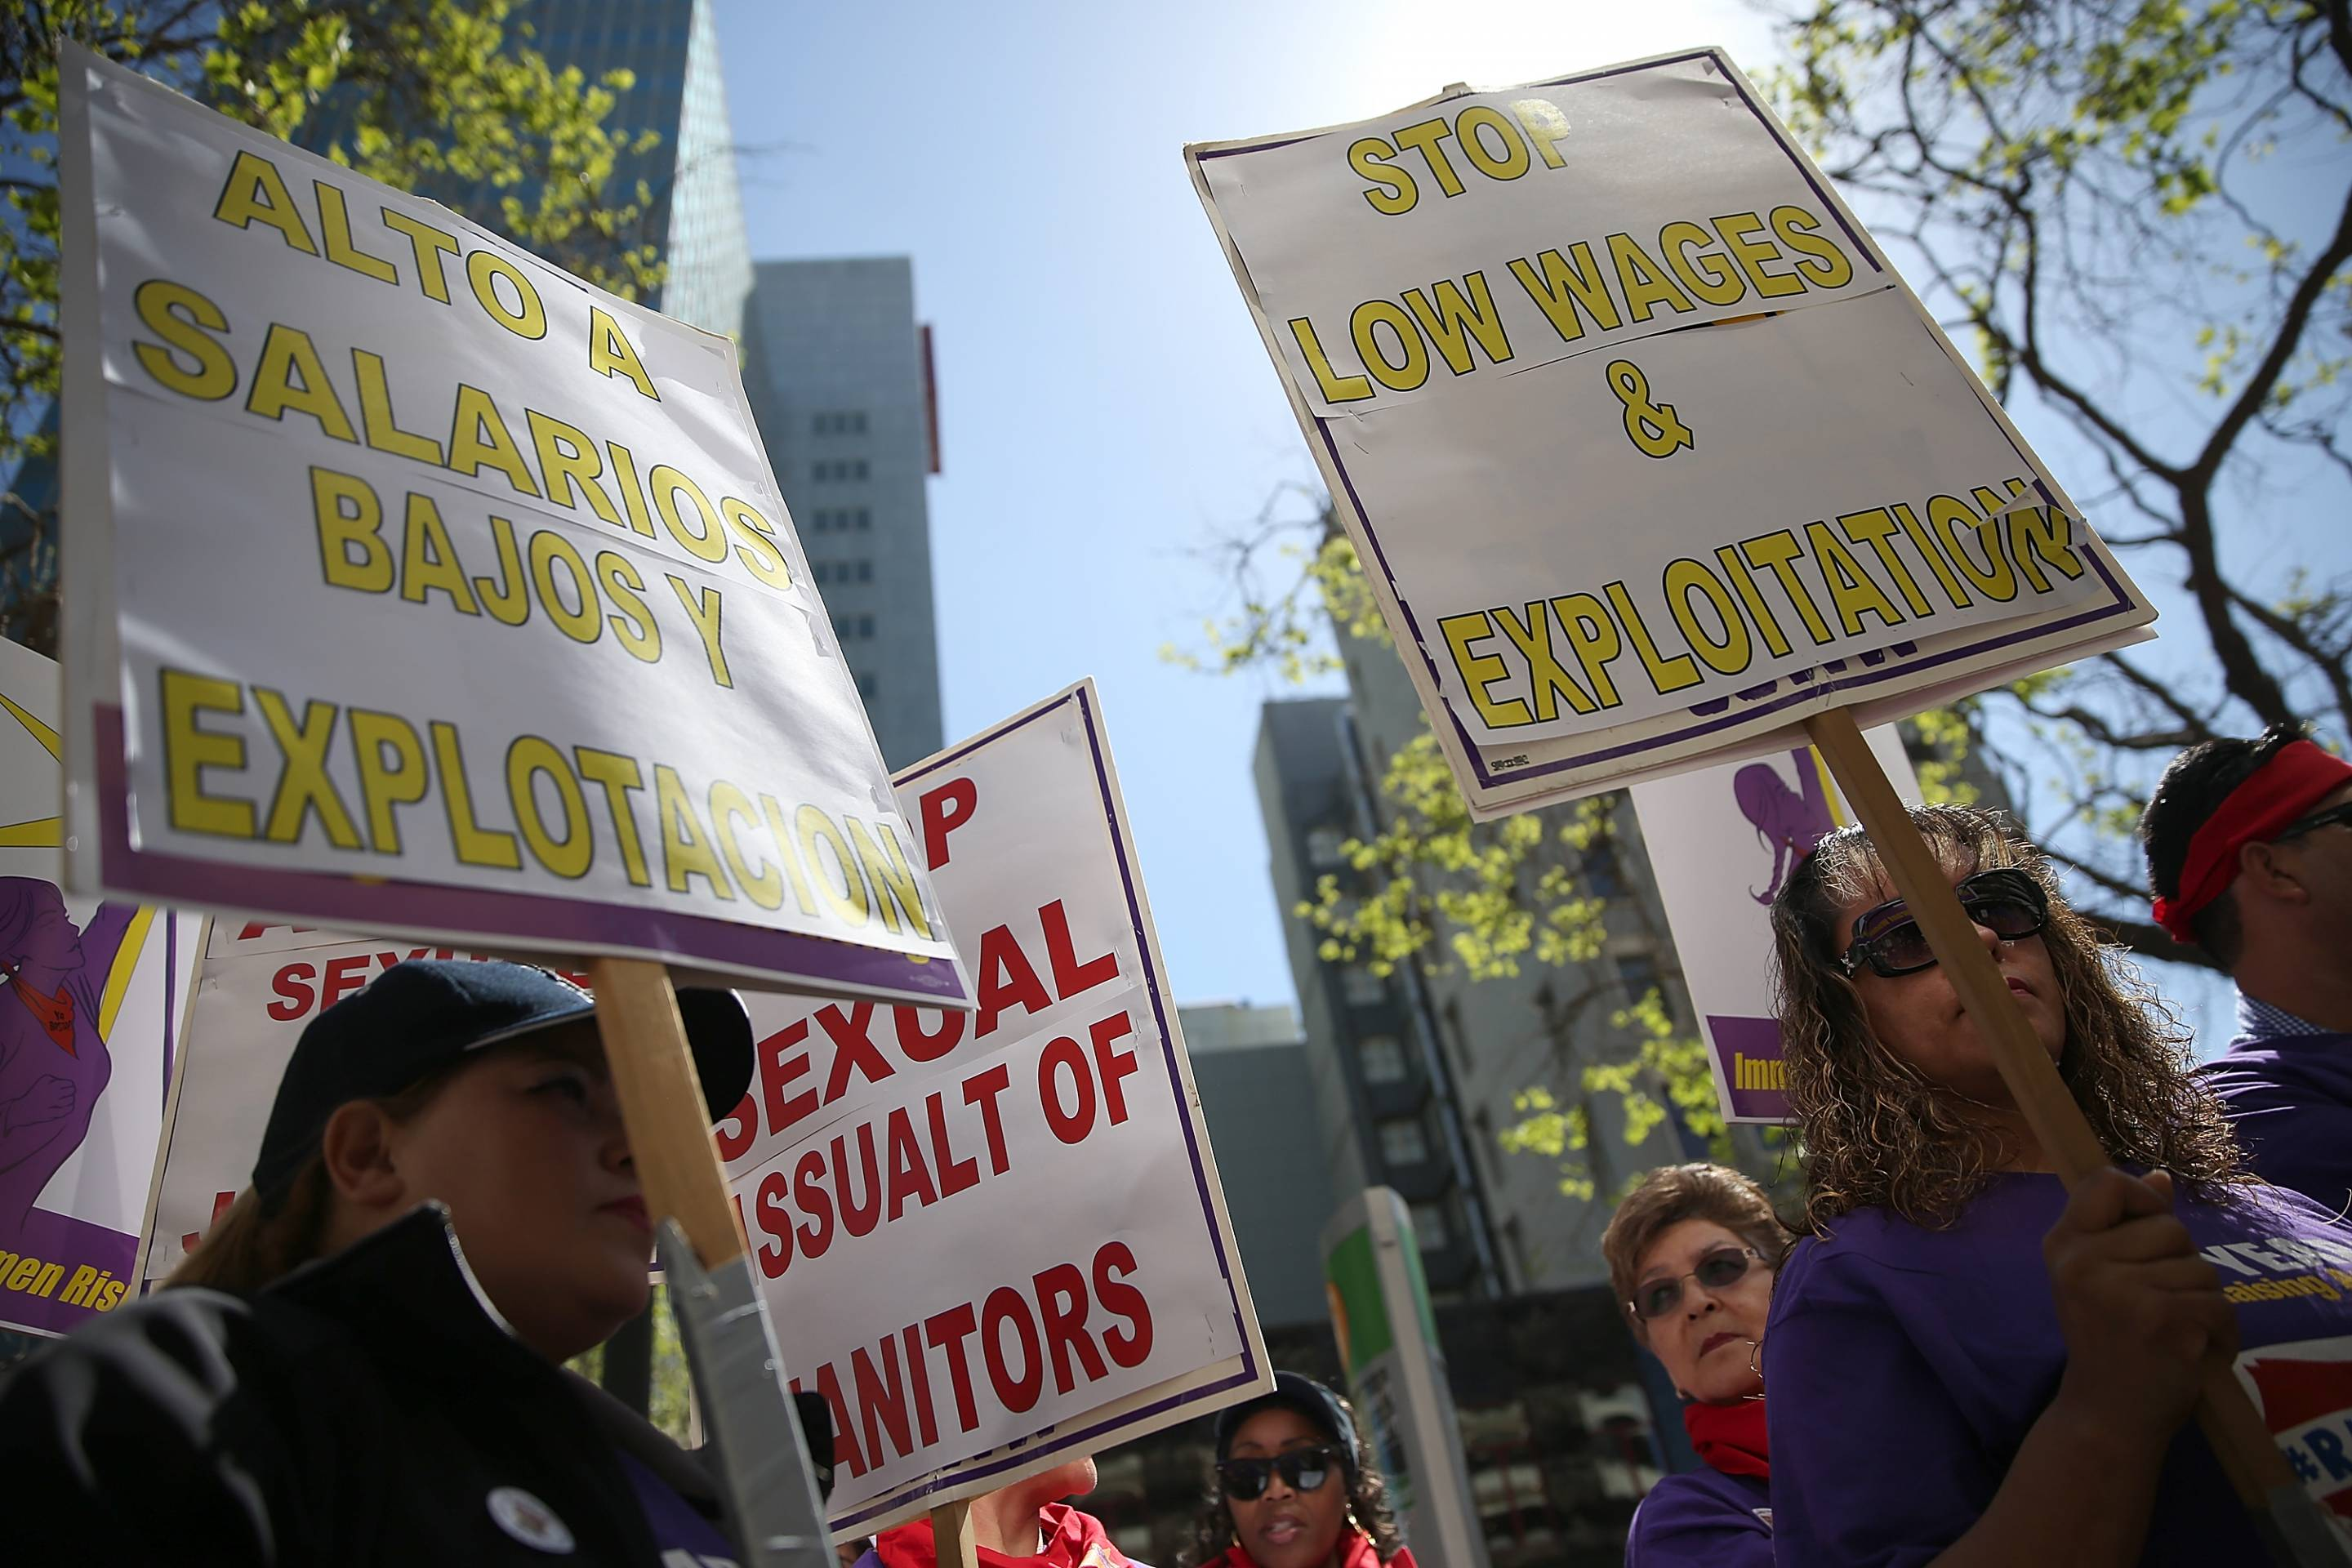 Union workers hold signs during a demonstration in support of a proposal to raise the California minimum wage to $15 by 2022 on March 31, 2016, in Oakland, Calif.